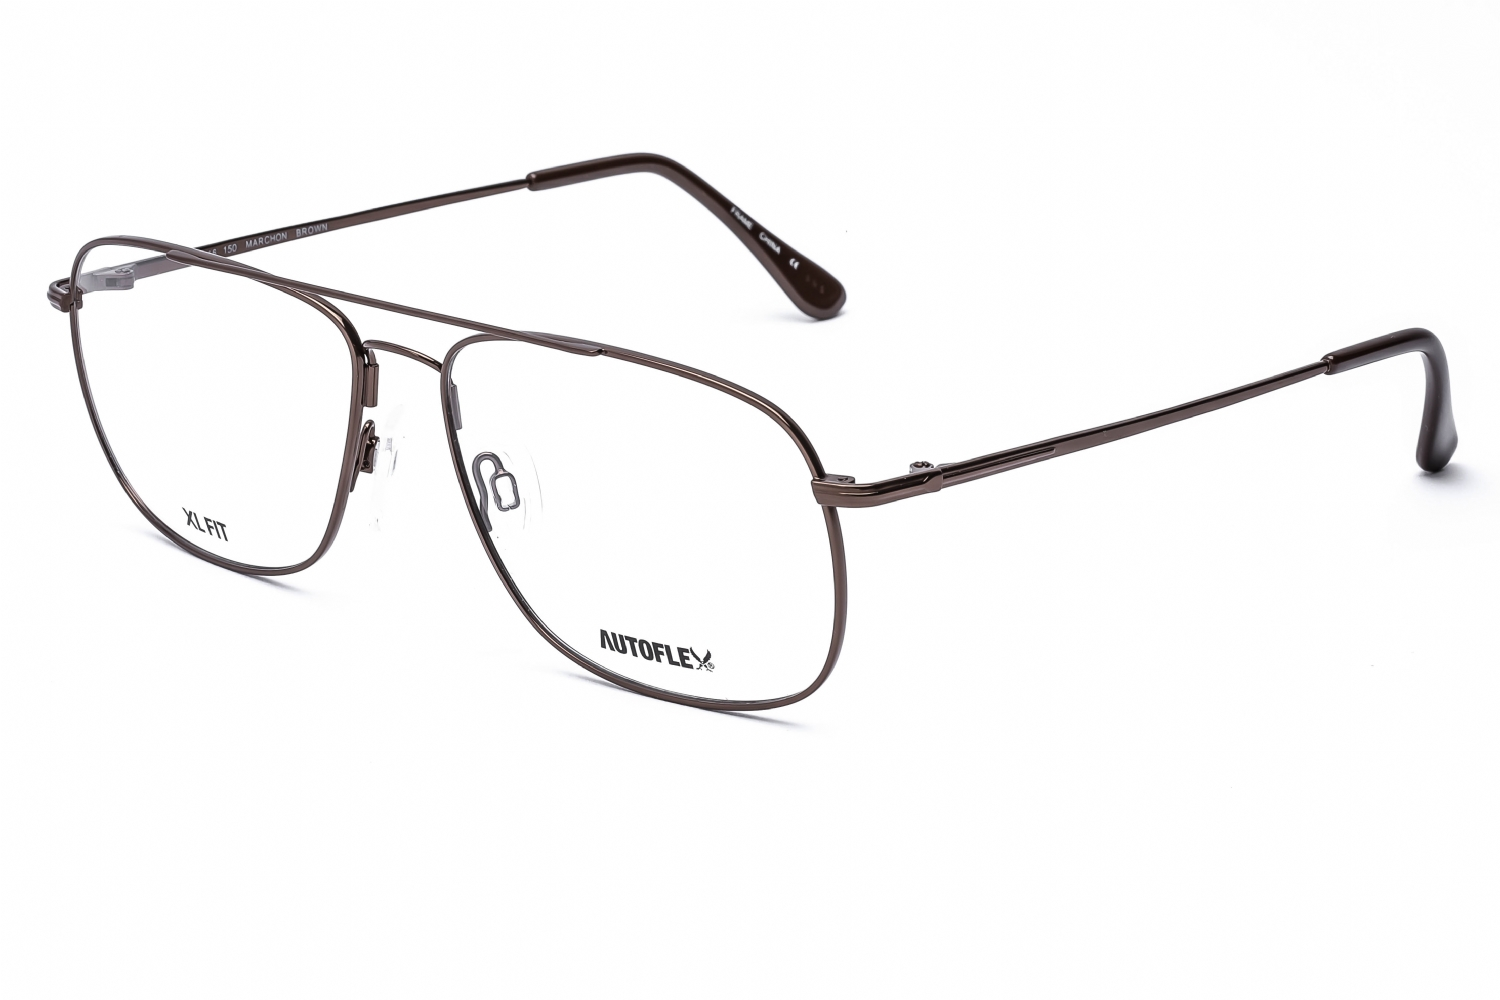 Eyeglasses FLEXON AUTOFLEX DESPERADO 210 BROWN